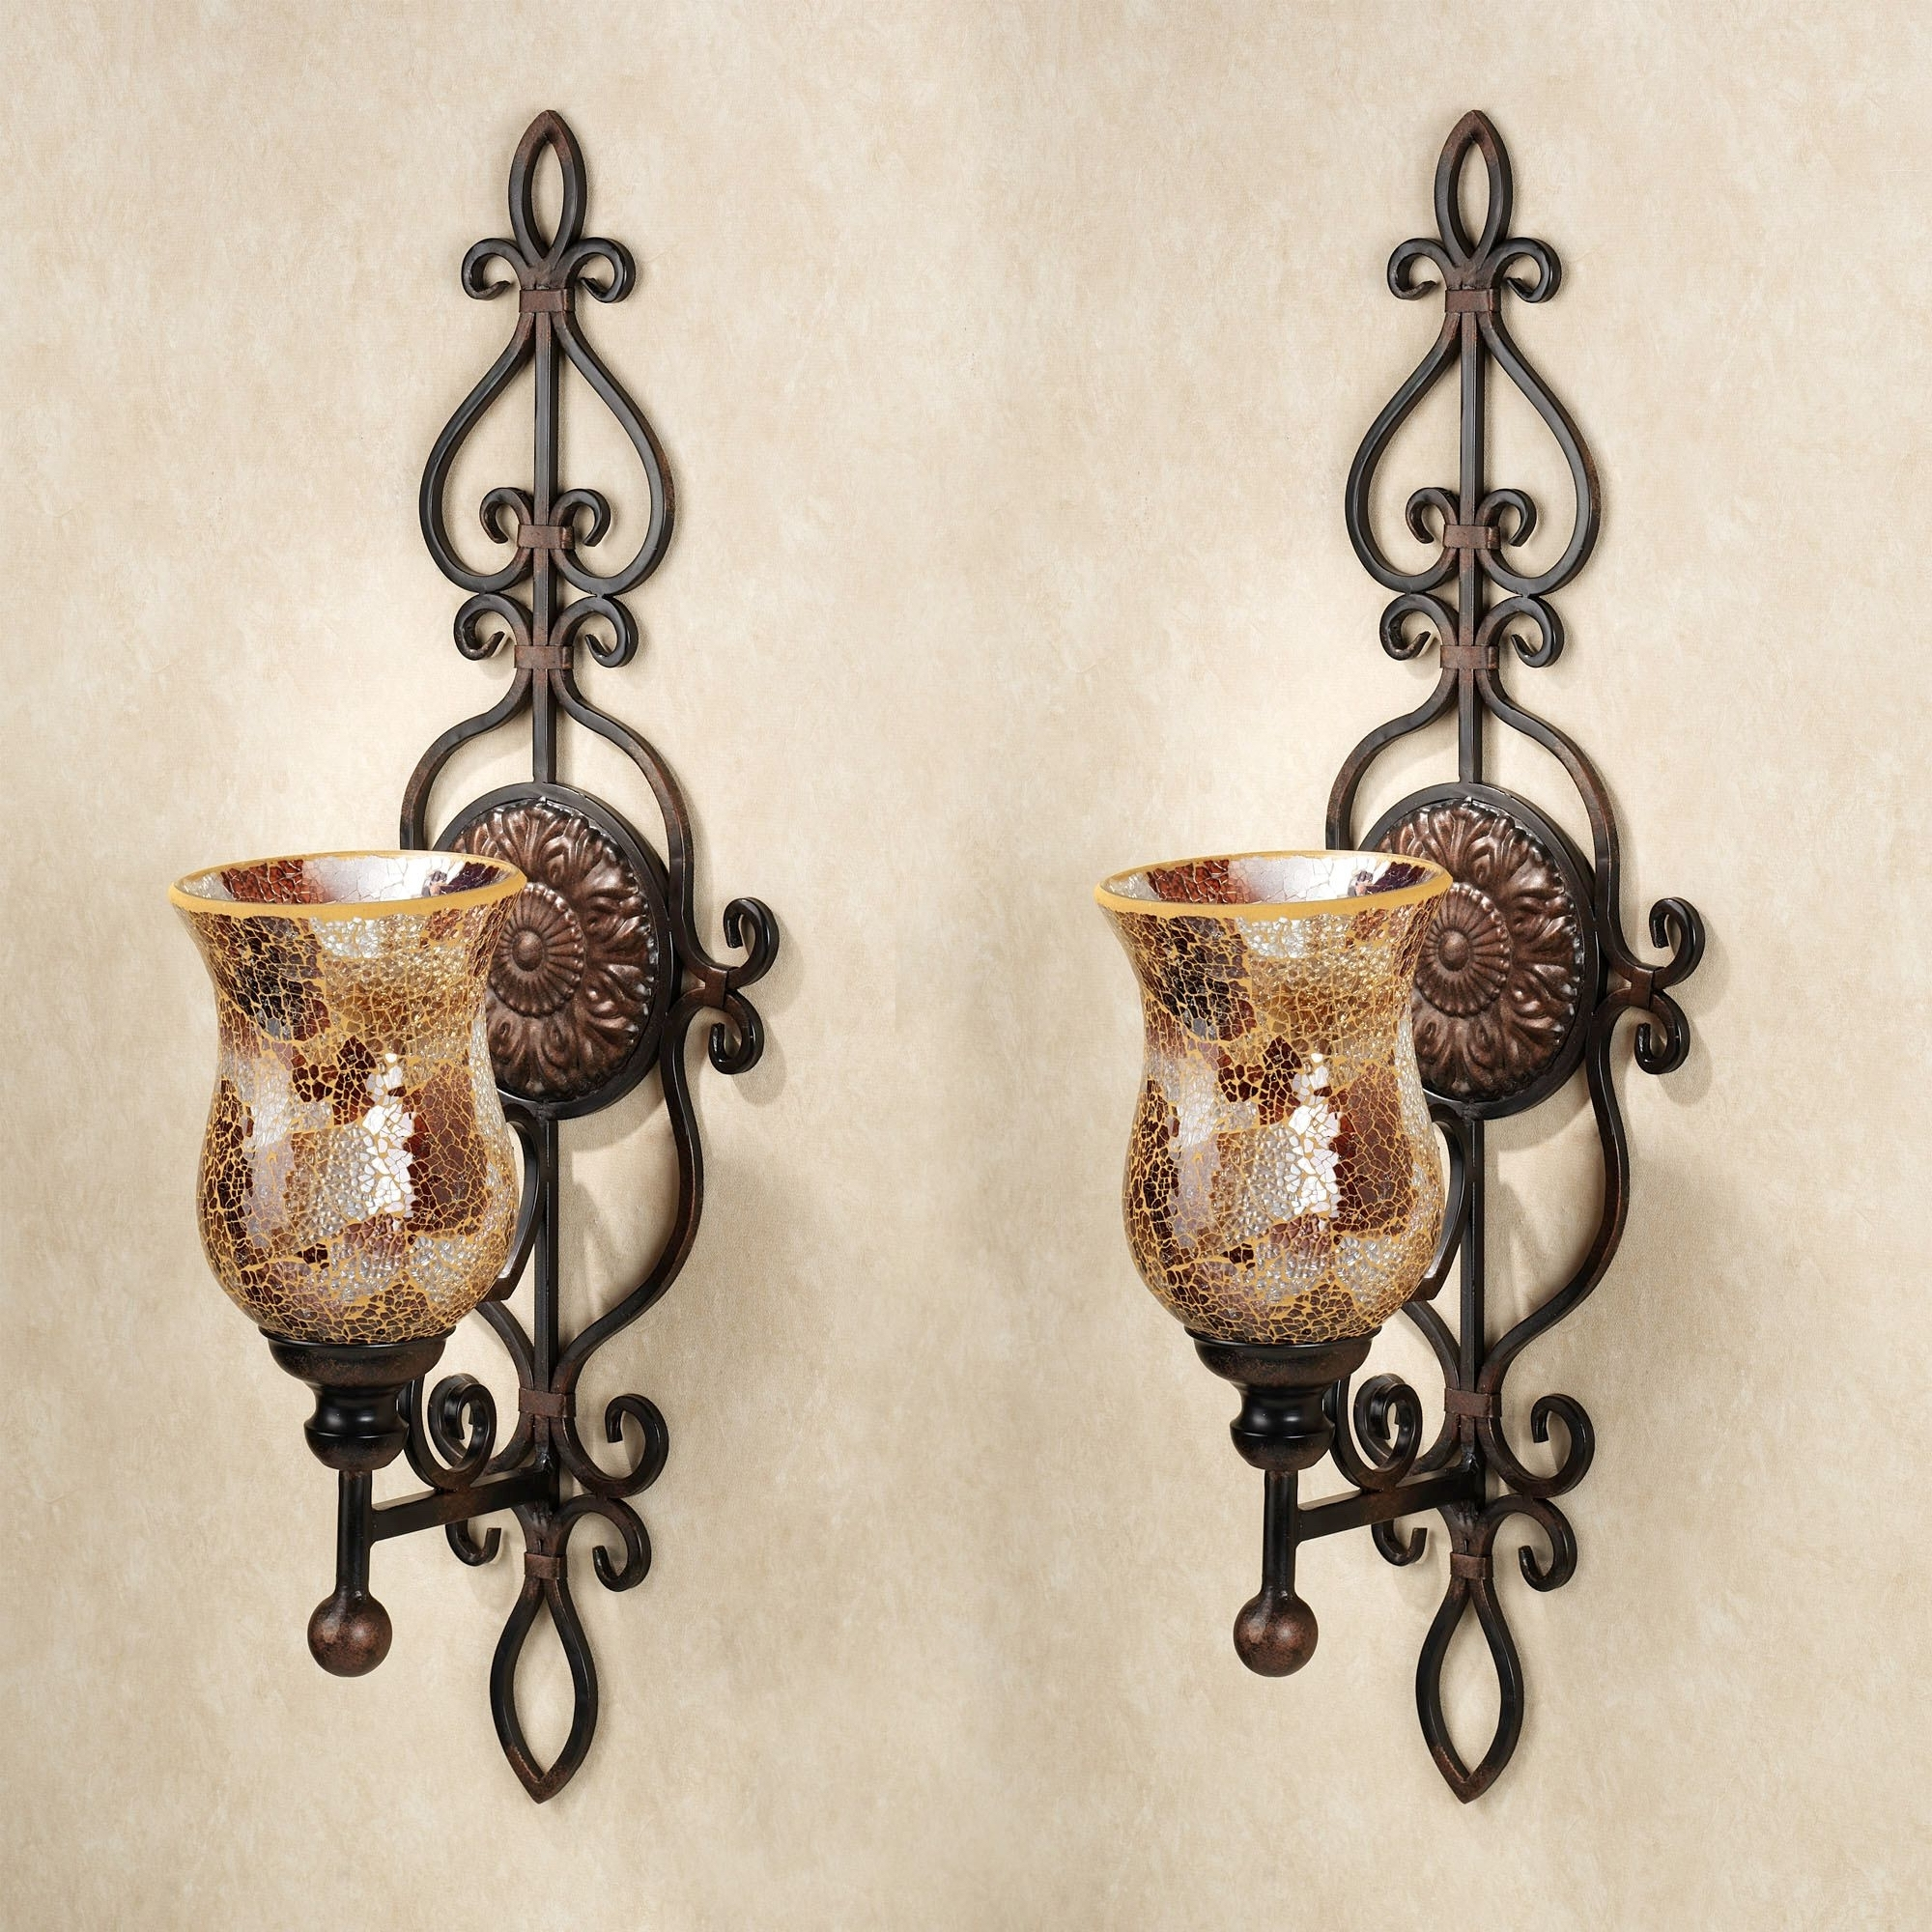 Most Recently Released Metal Wall Art With Candles Throughout Hanging Wall Candle Sconces Fresh Home Concept Wall Sconces For (View 11 of 15)